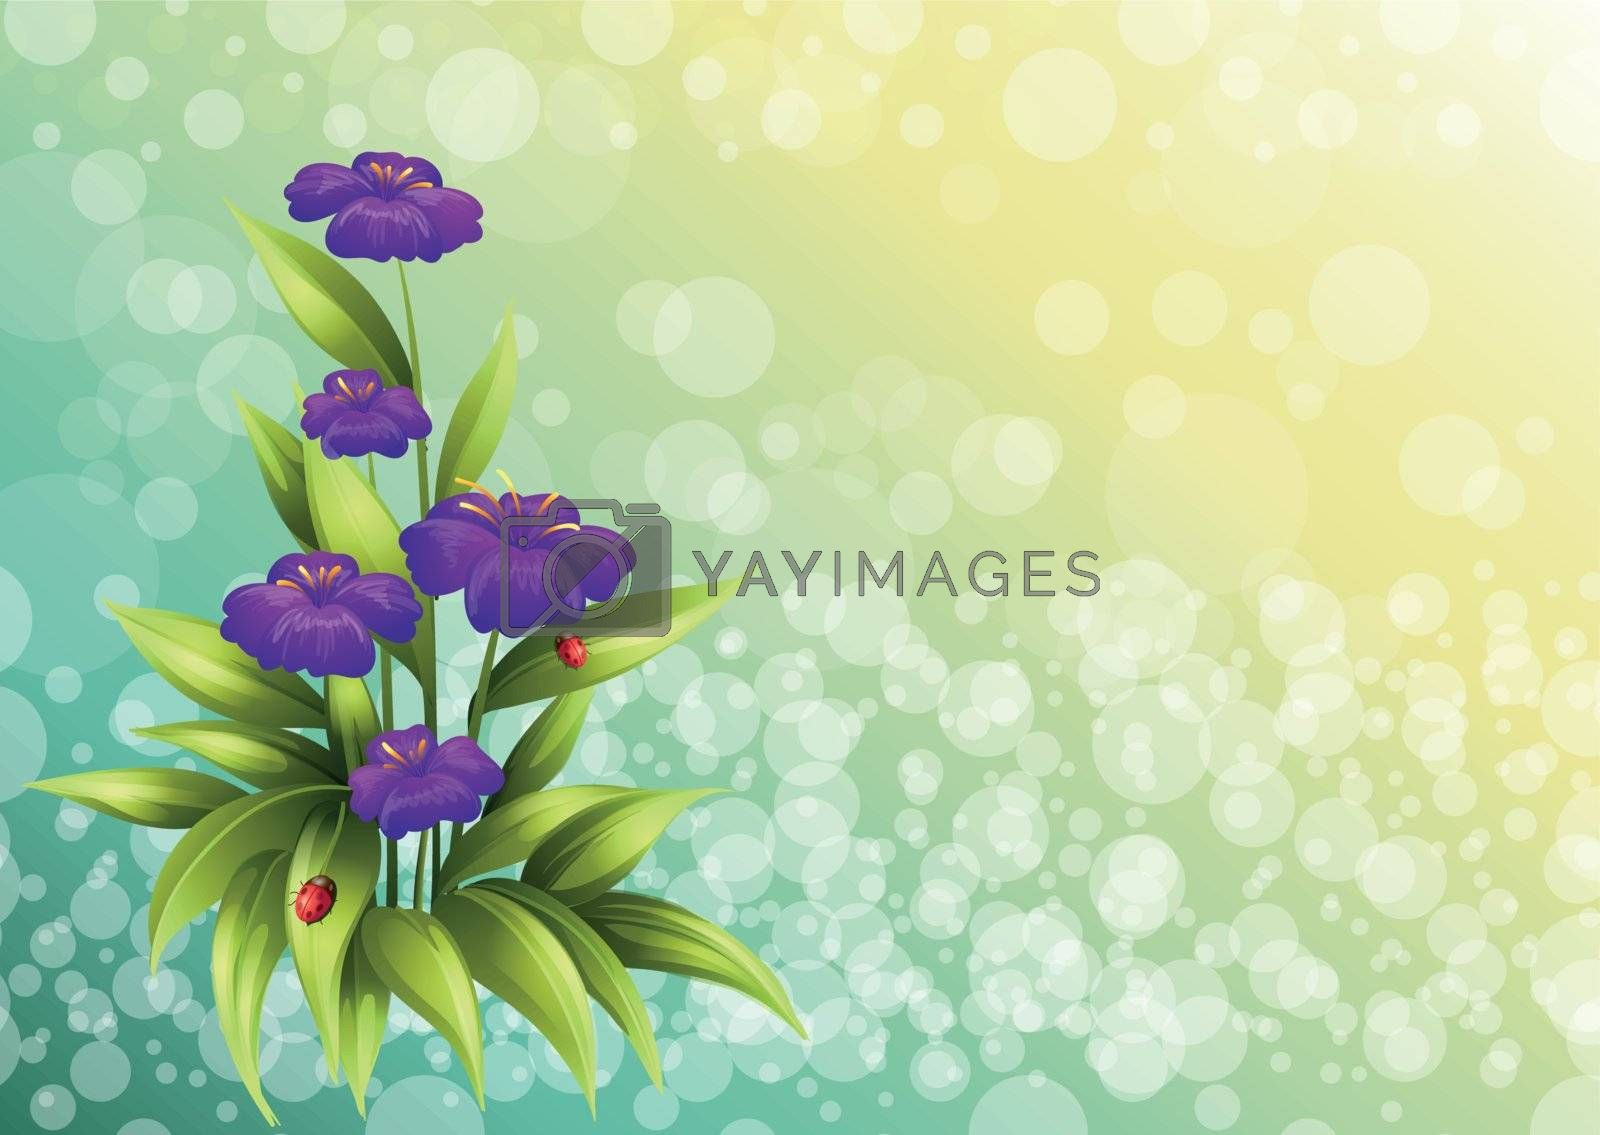 Illustration of a plant with violet flowers